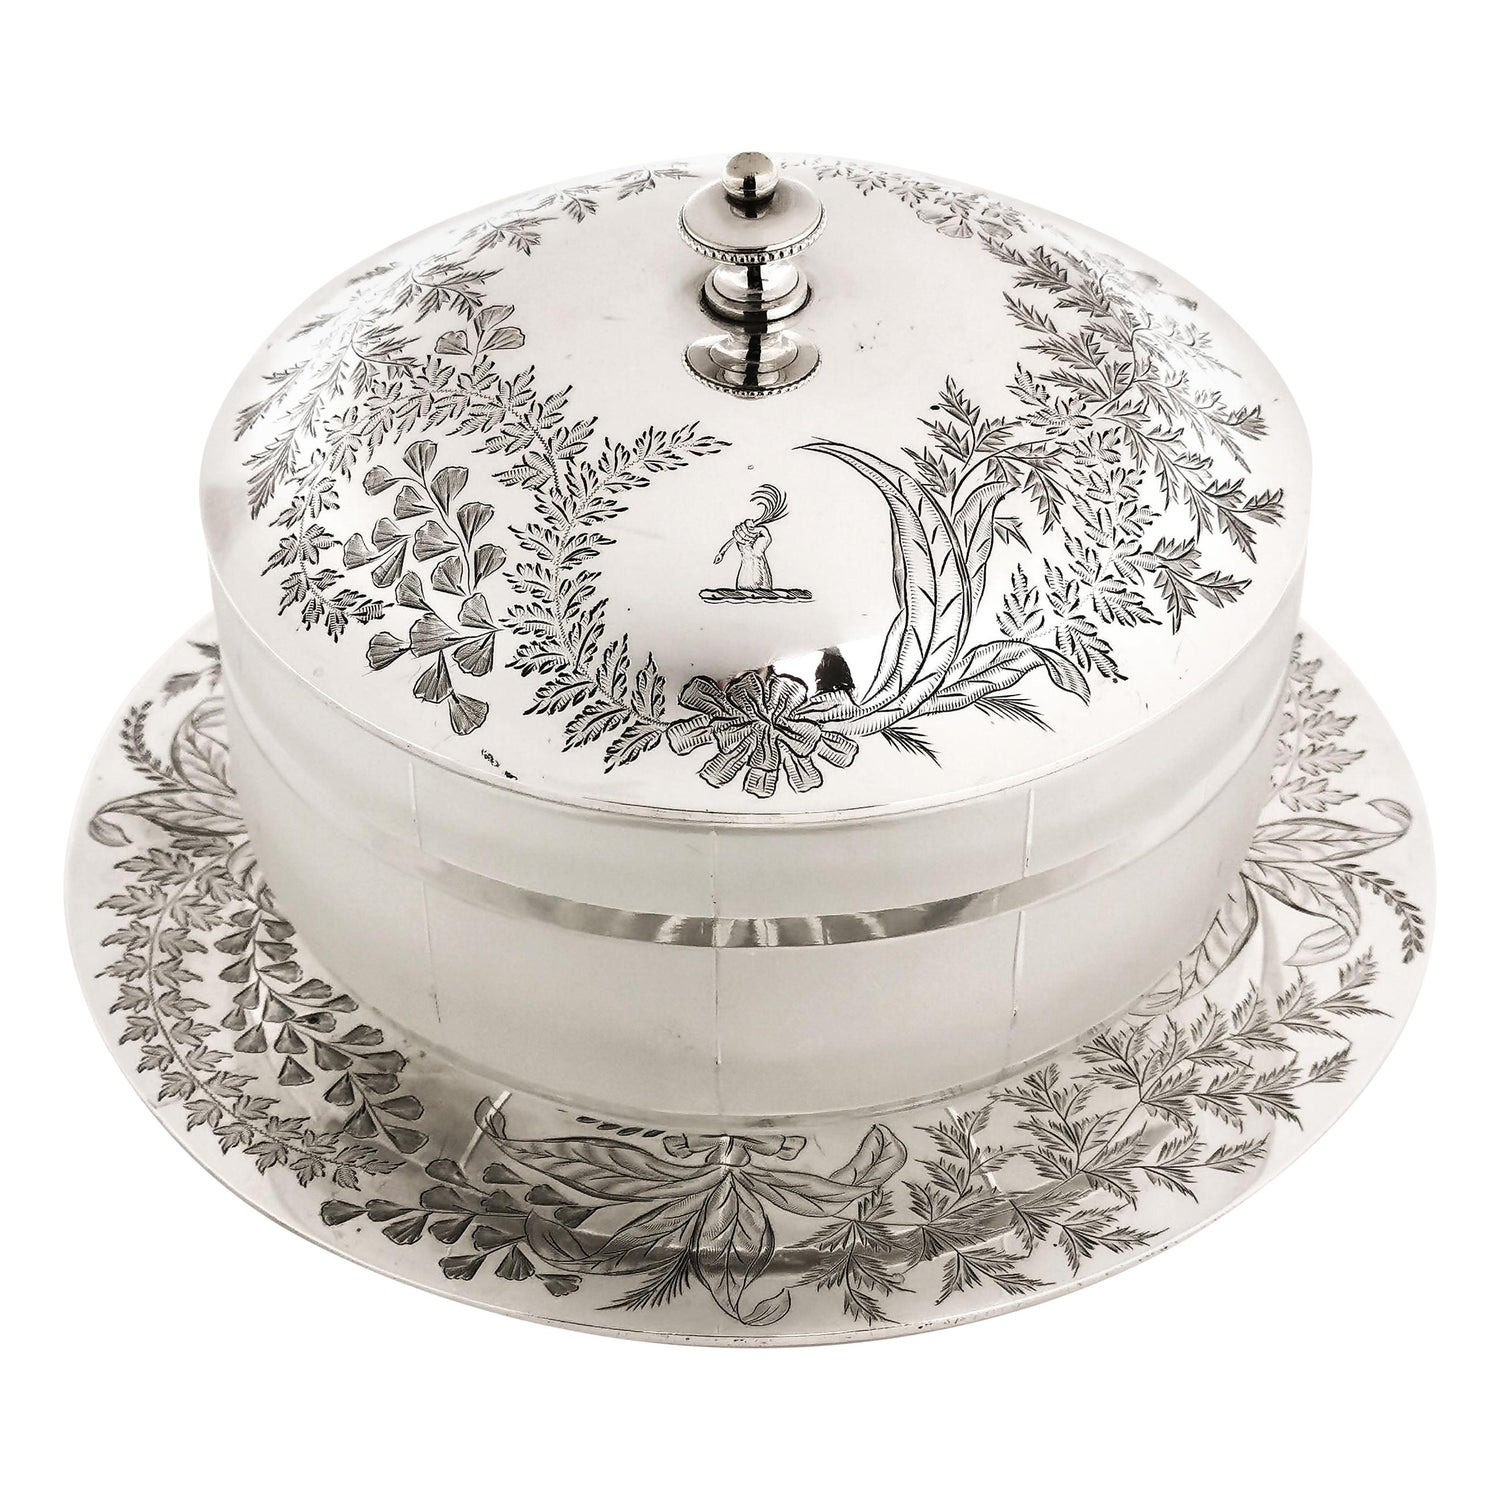 Antique Victorian Sterling Silver and Glass Butter Dish 1871